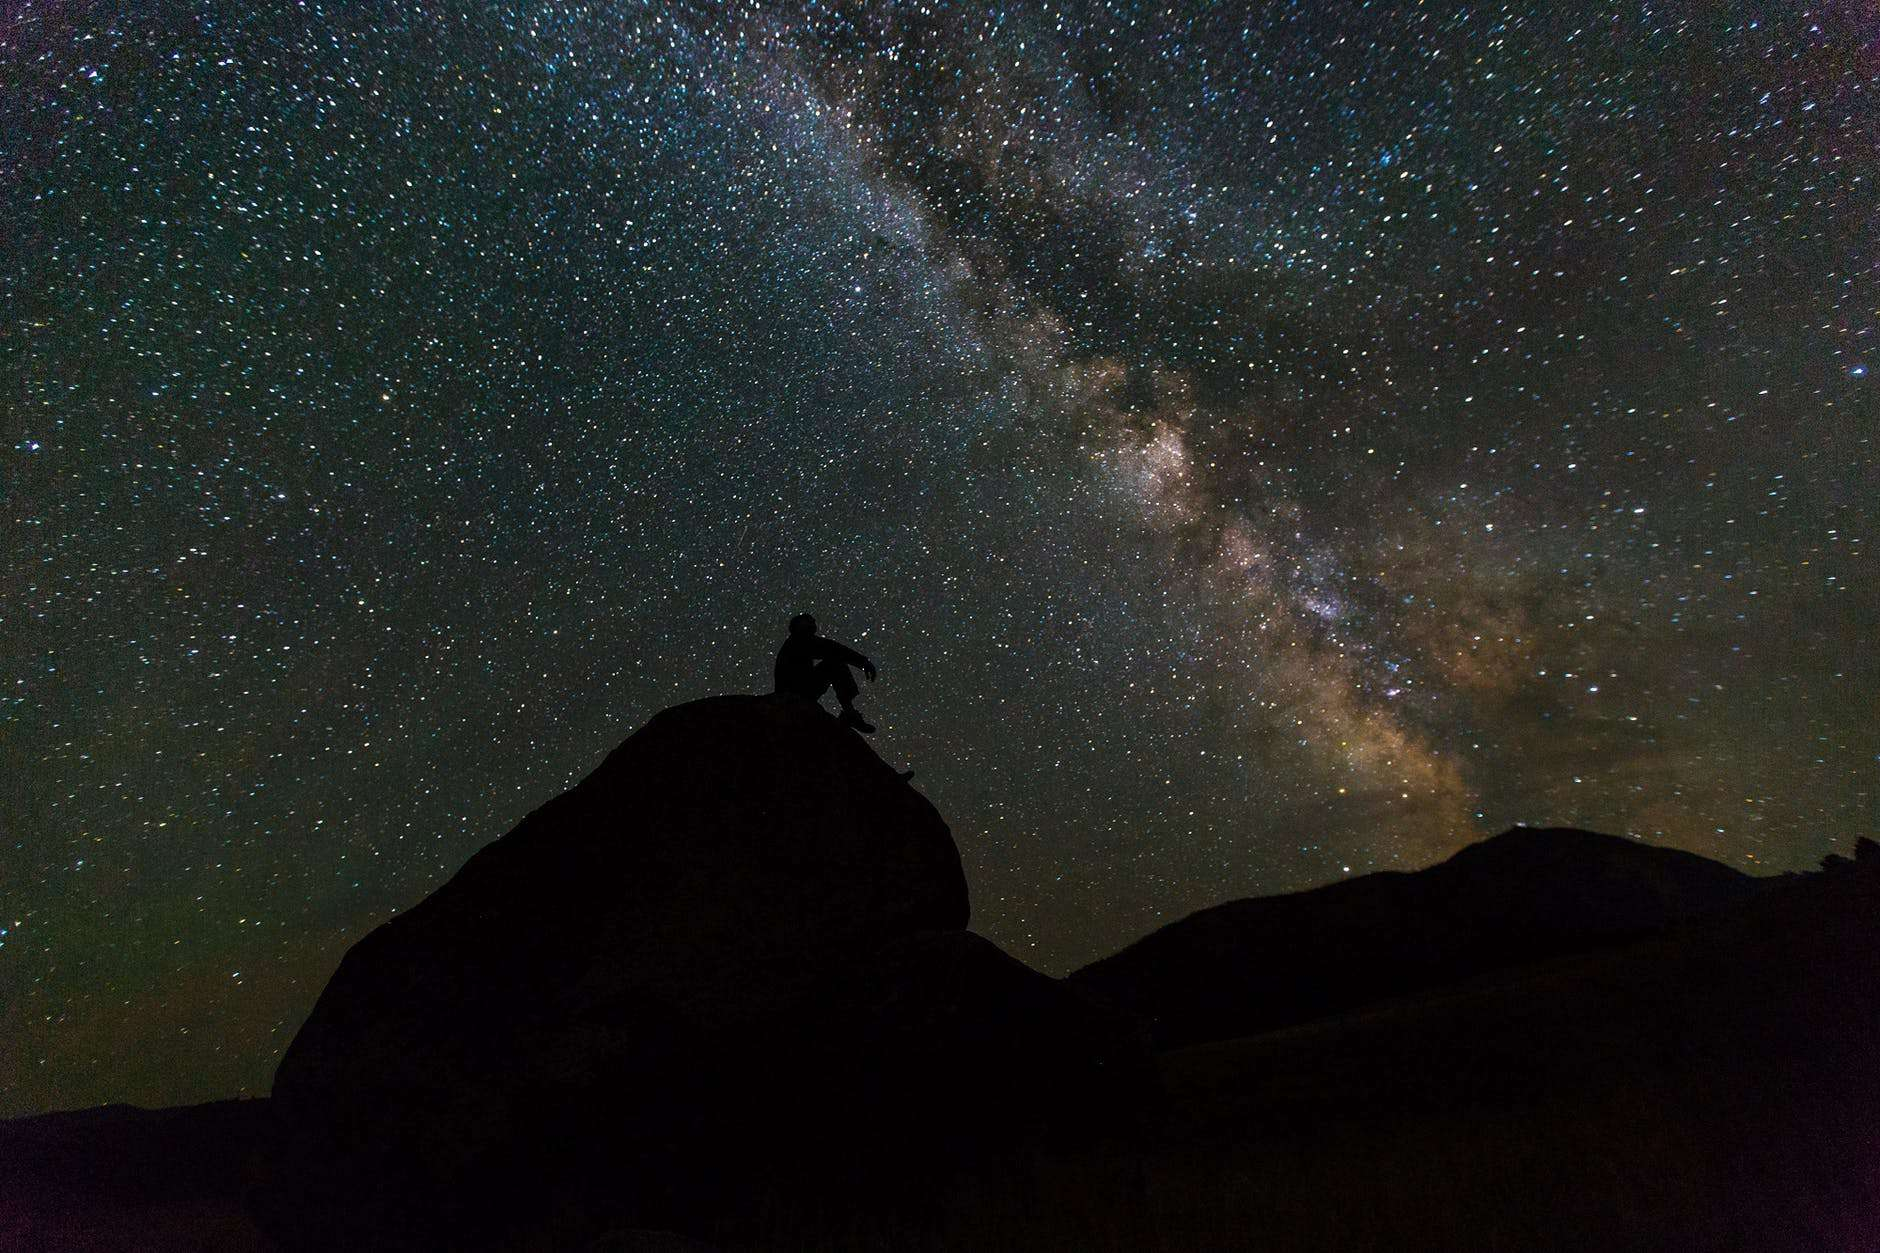 guy trying to see the stars naturally